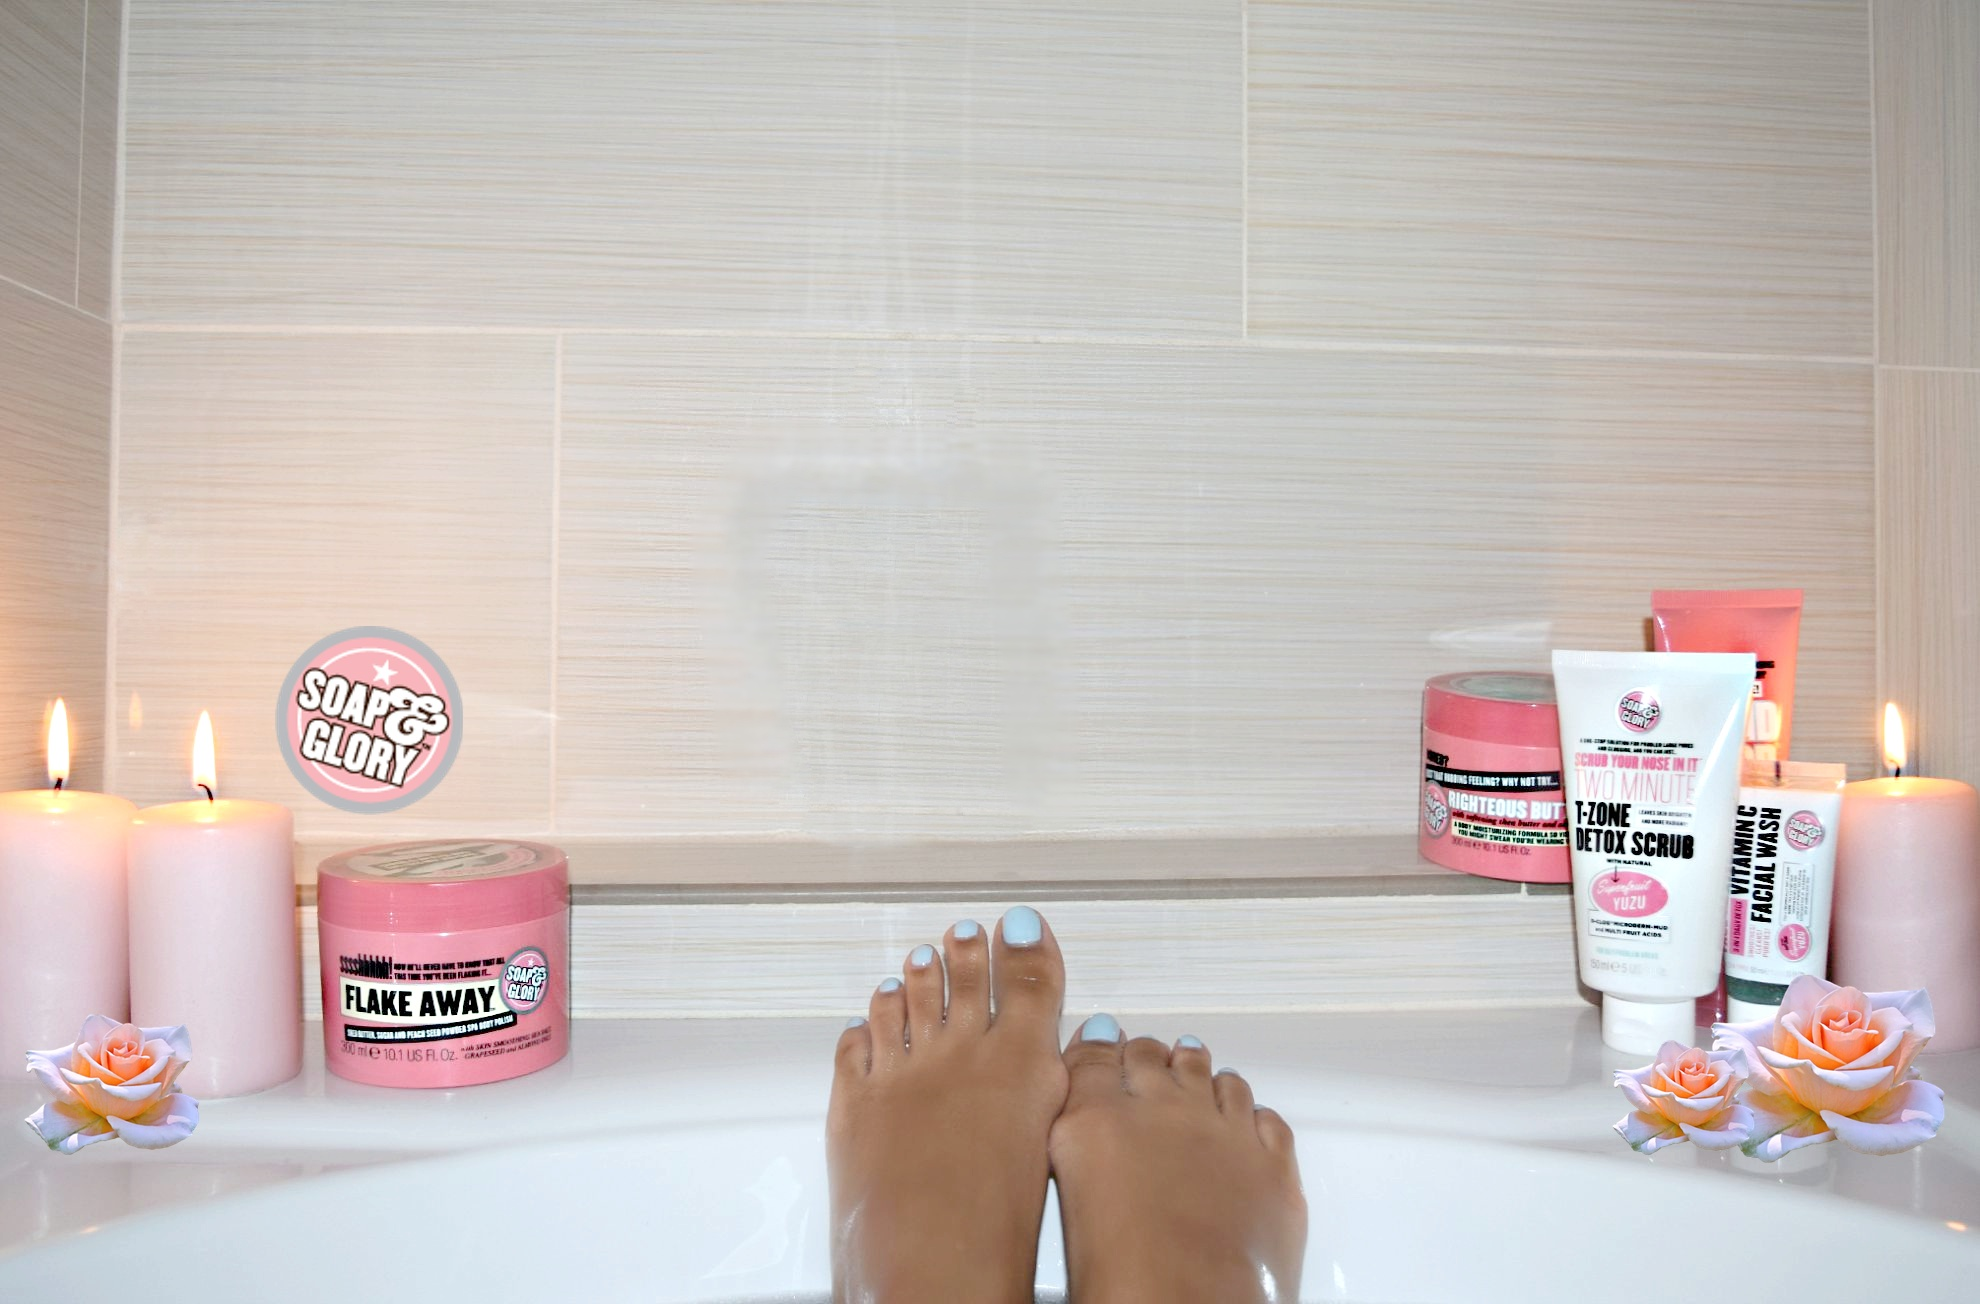 Soap & Glory: To Style, With Love